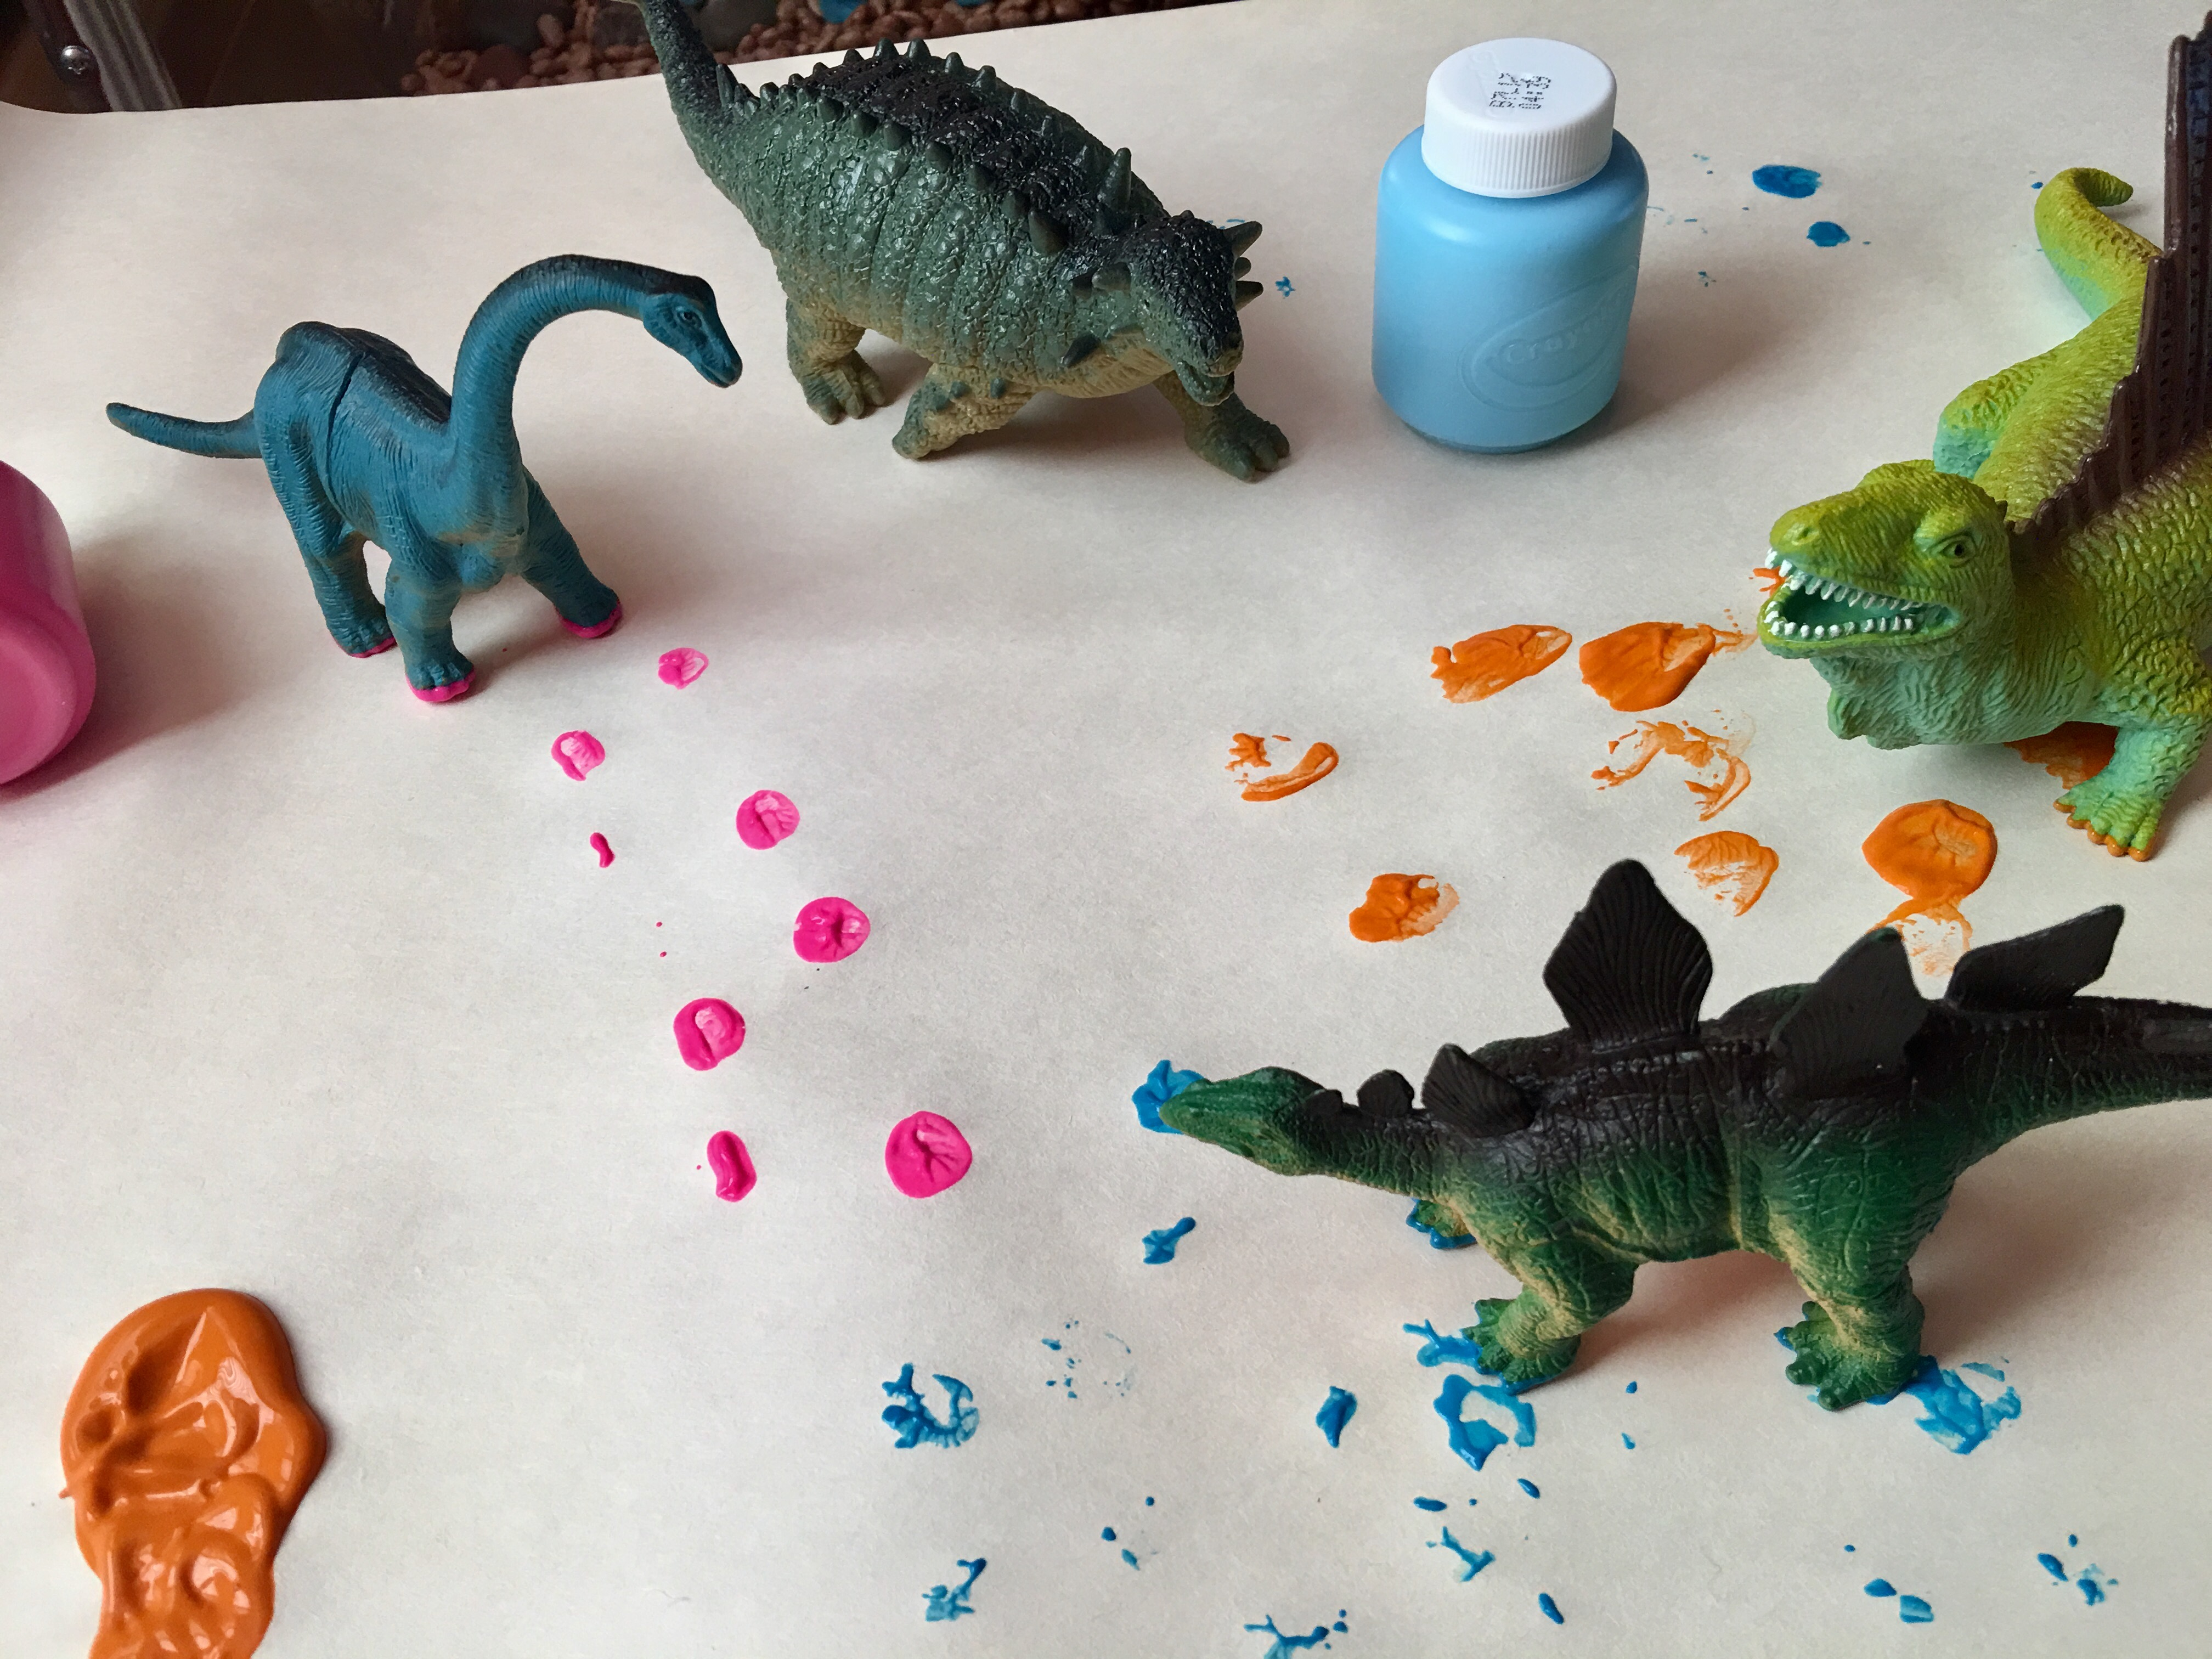 Dinosaur Stomping: creating simple art projects for exploring dinosaurs. #processart